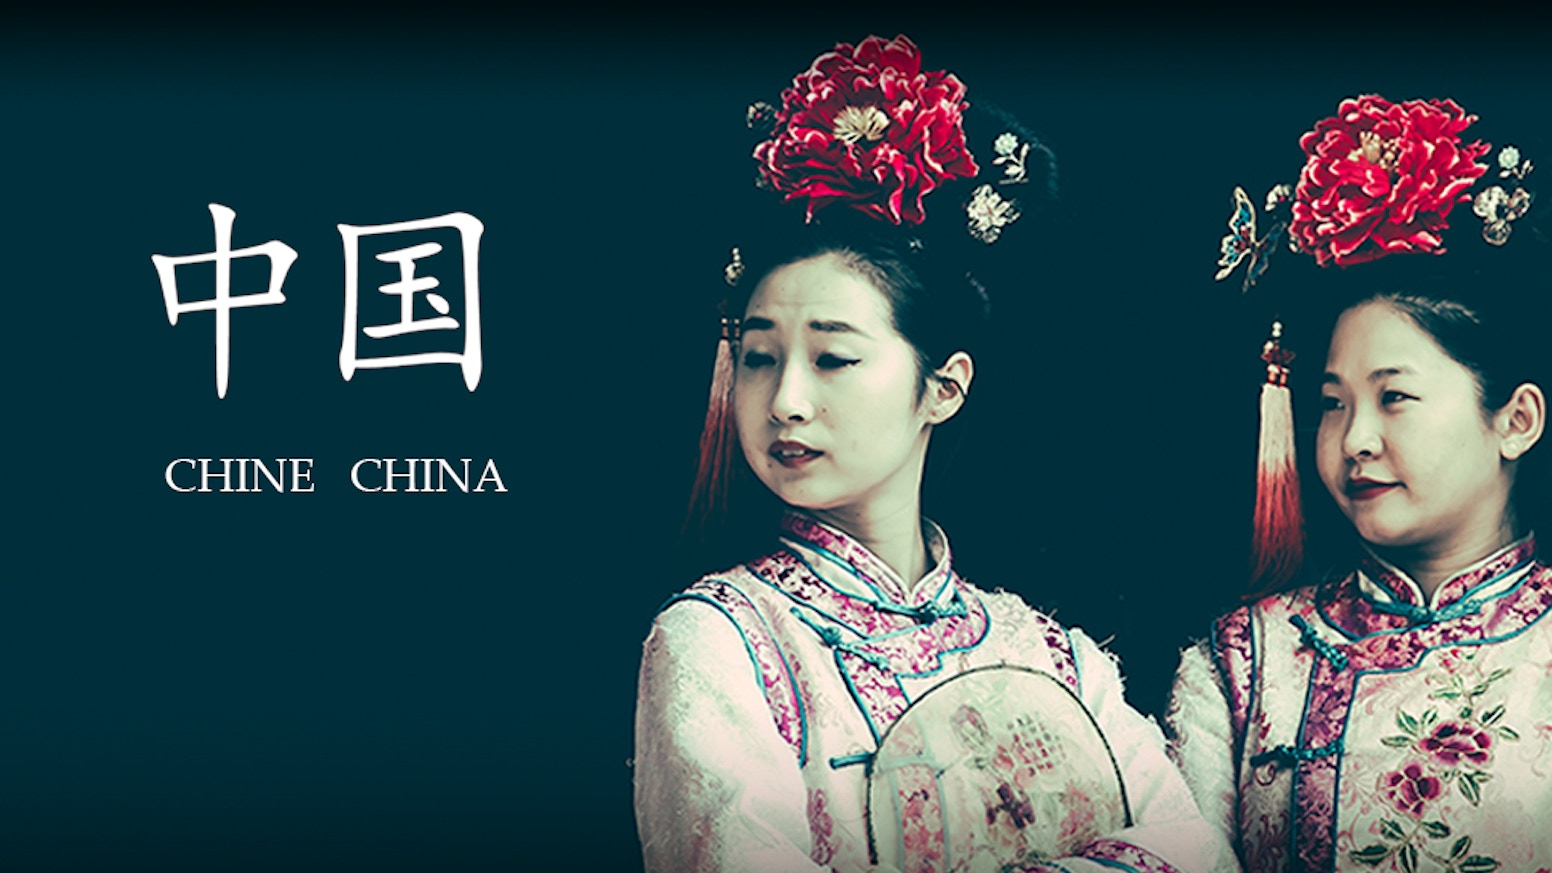 Chine: Un projet photographique. China: A photography project